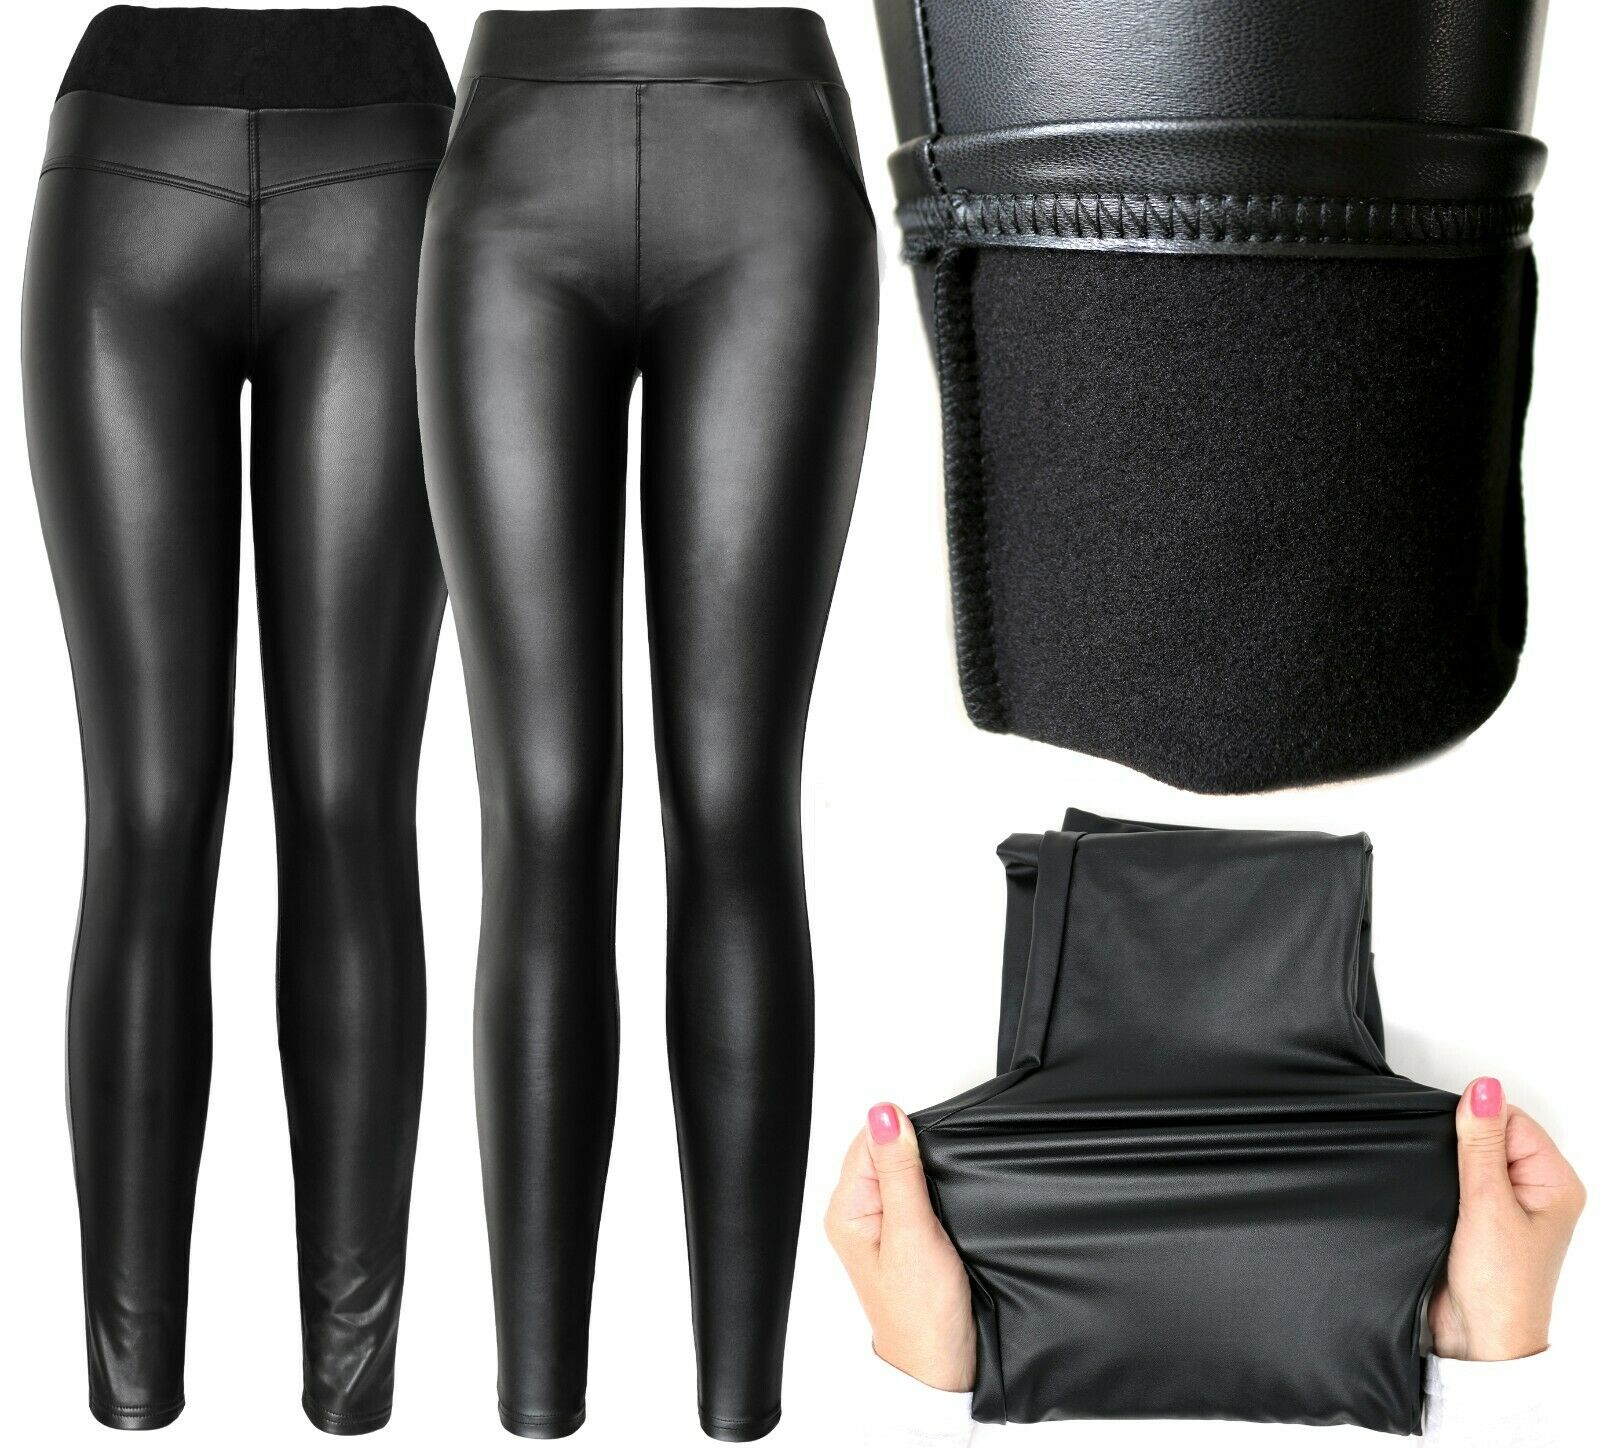 Stretchy Faux Leather Leggings Pants Sexy Black High Waist Leggings Clothing, Shoes & Accessories